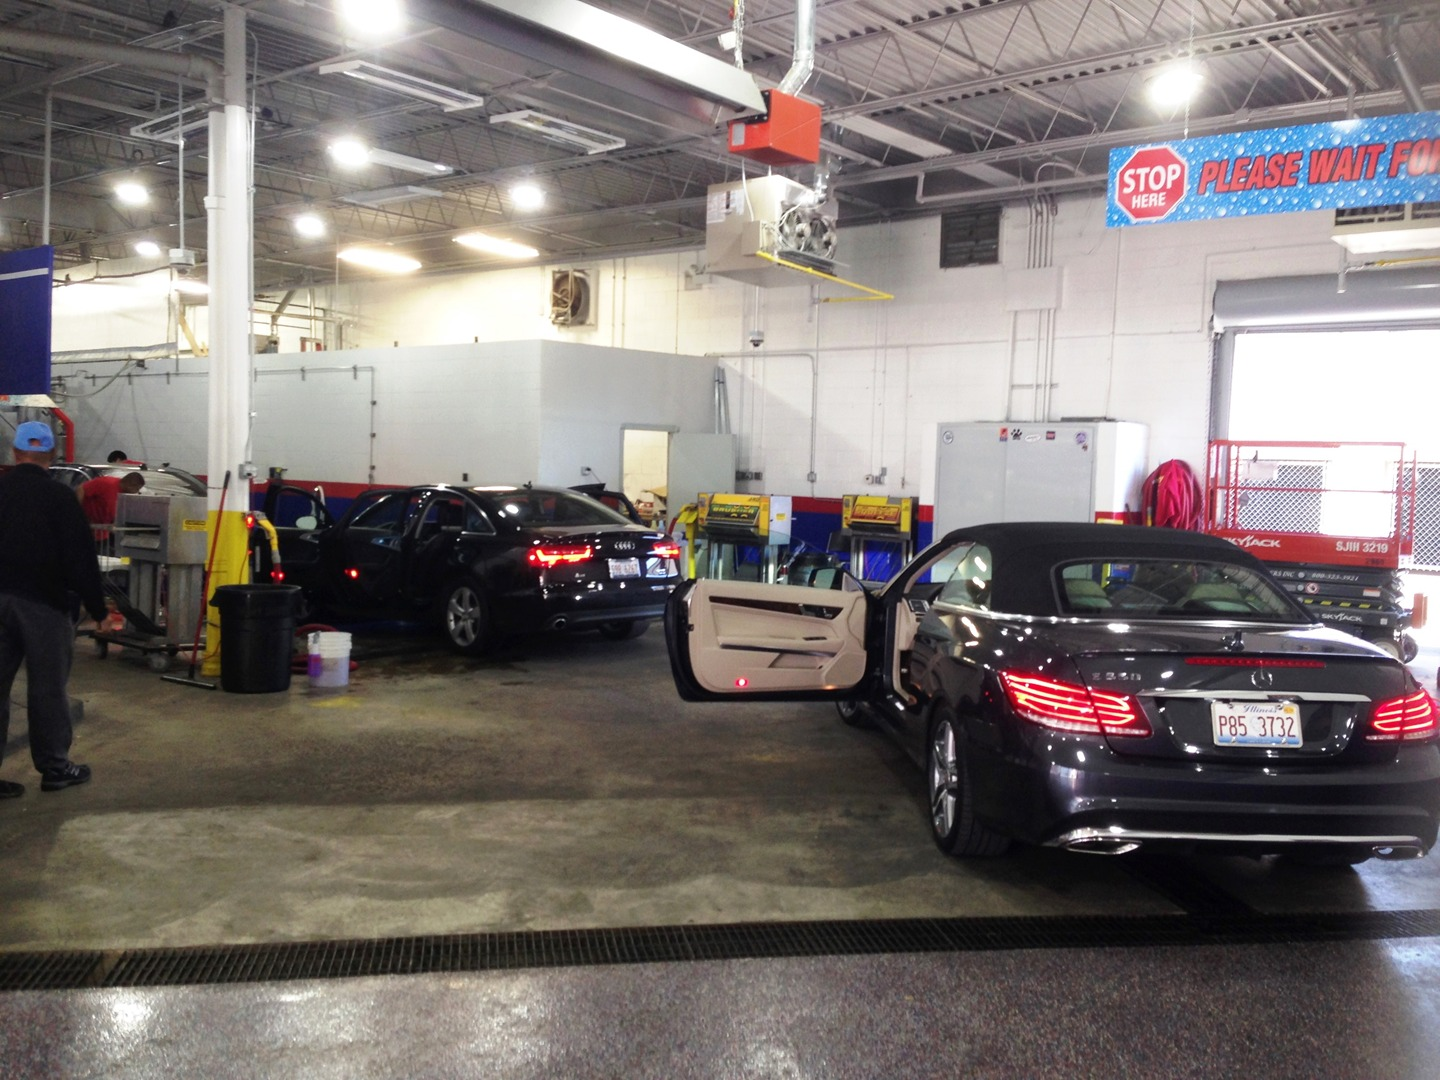 Car wash auto detailing white glove car wash chicago il we are committed to washing cars its the only thing we do here most importantly is providing you service with honesty quality and value solutioingenieria Images